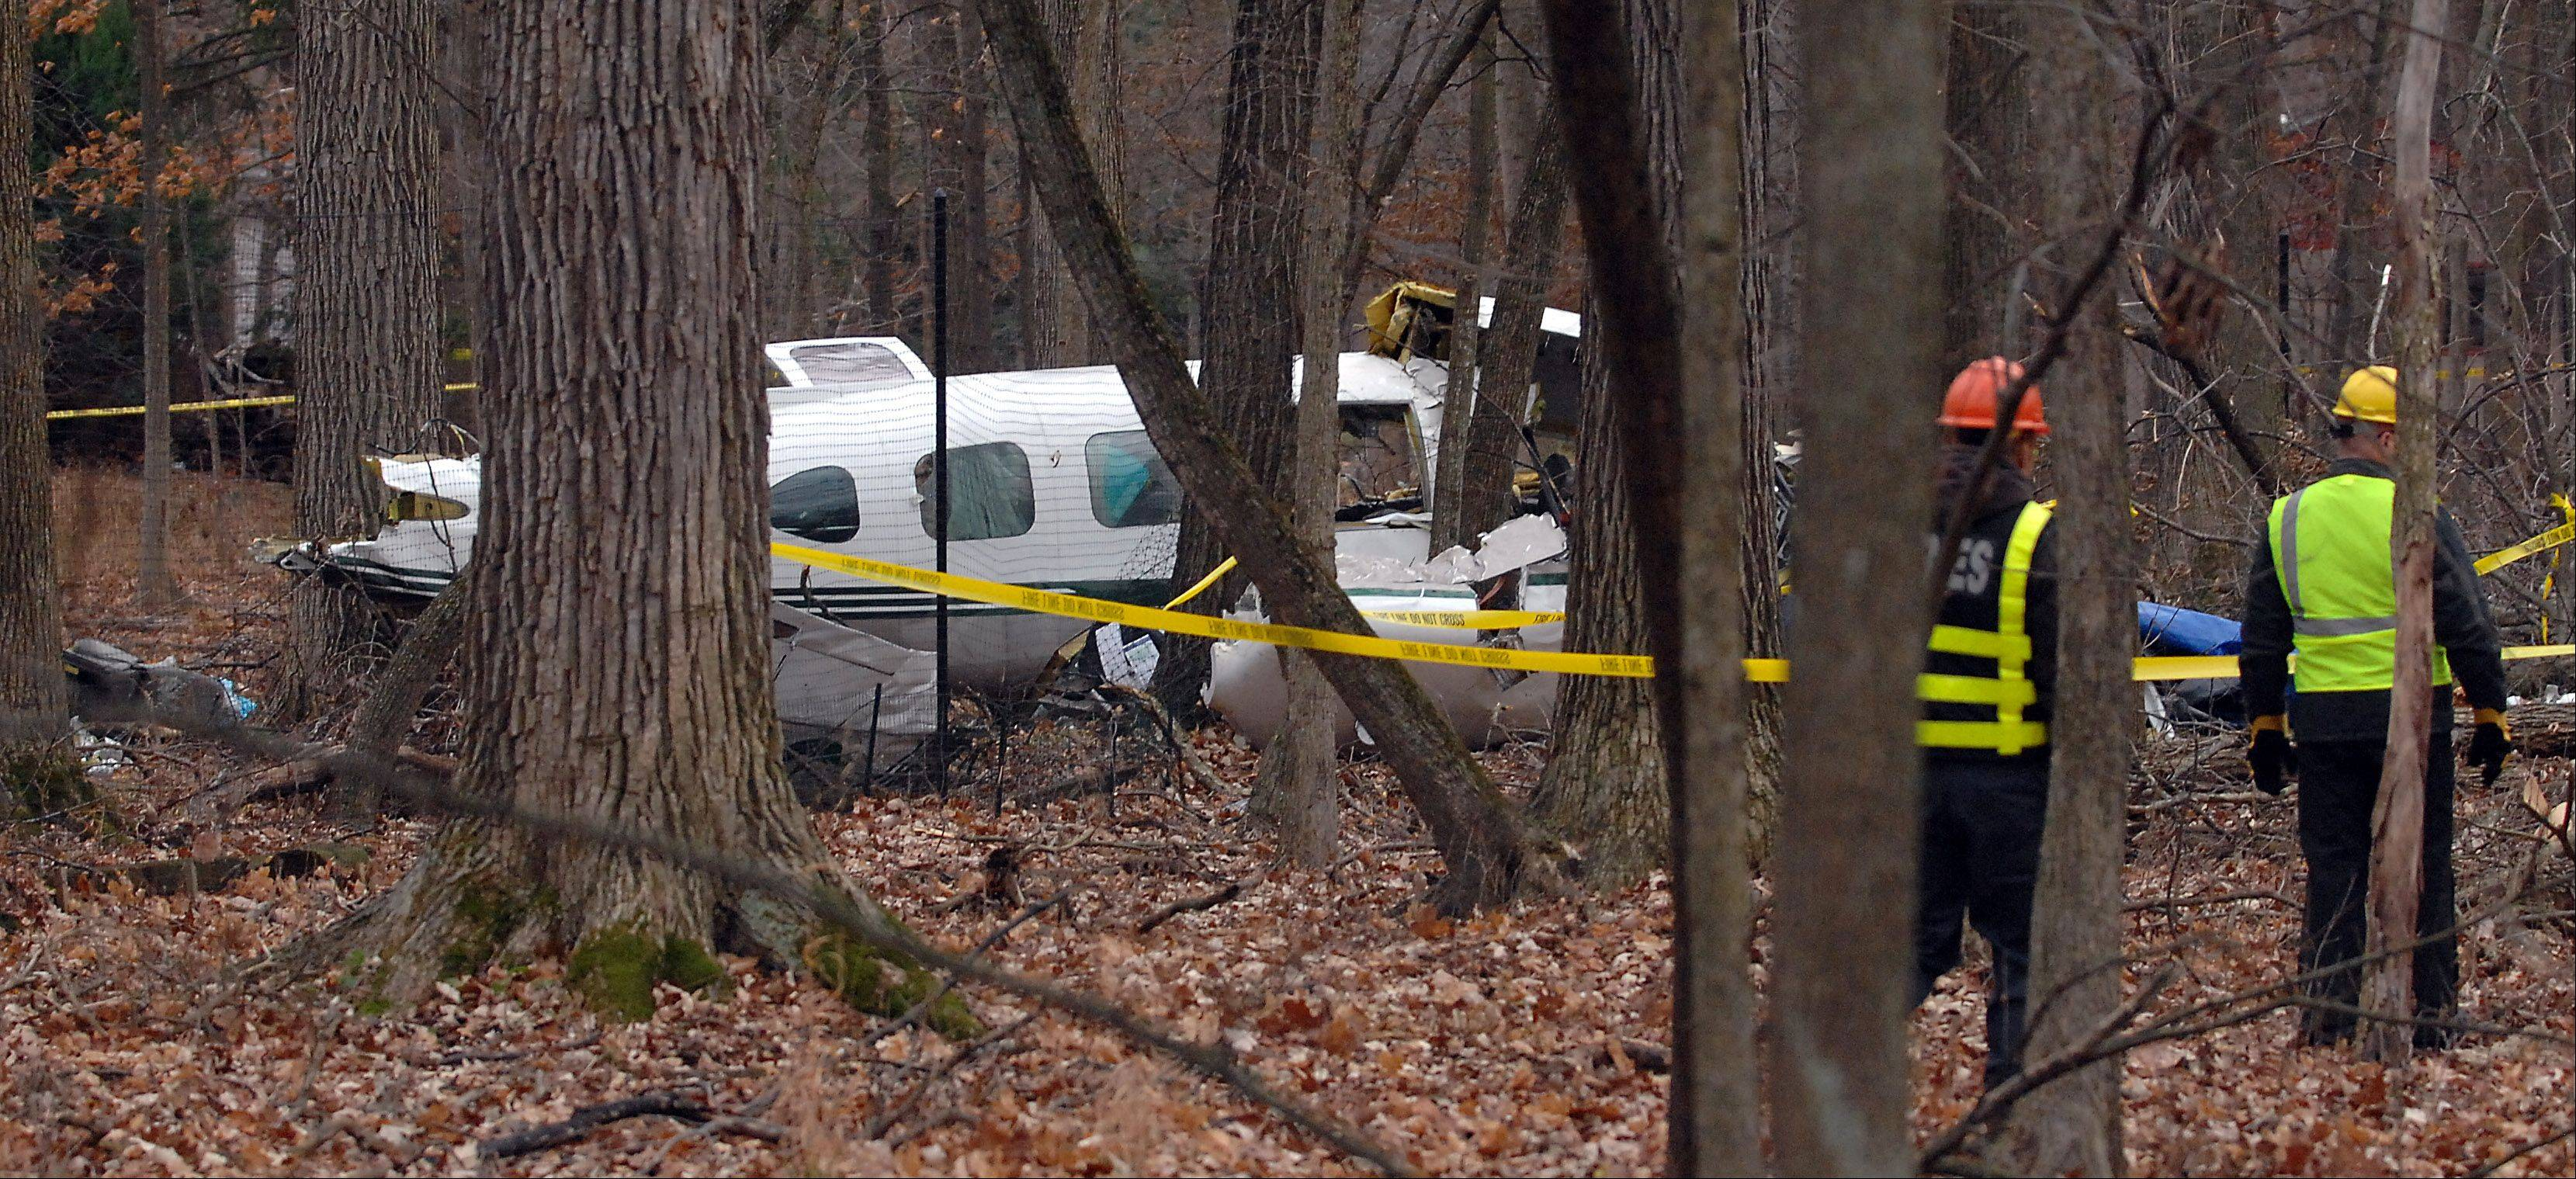 Officials look to cut down trees in order to remove the Riverwood's plane crash which killed three people last night around 10:50 p.m. near Portwine Rd. and Orange Brace Rd.